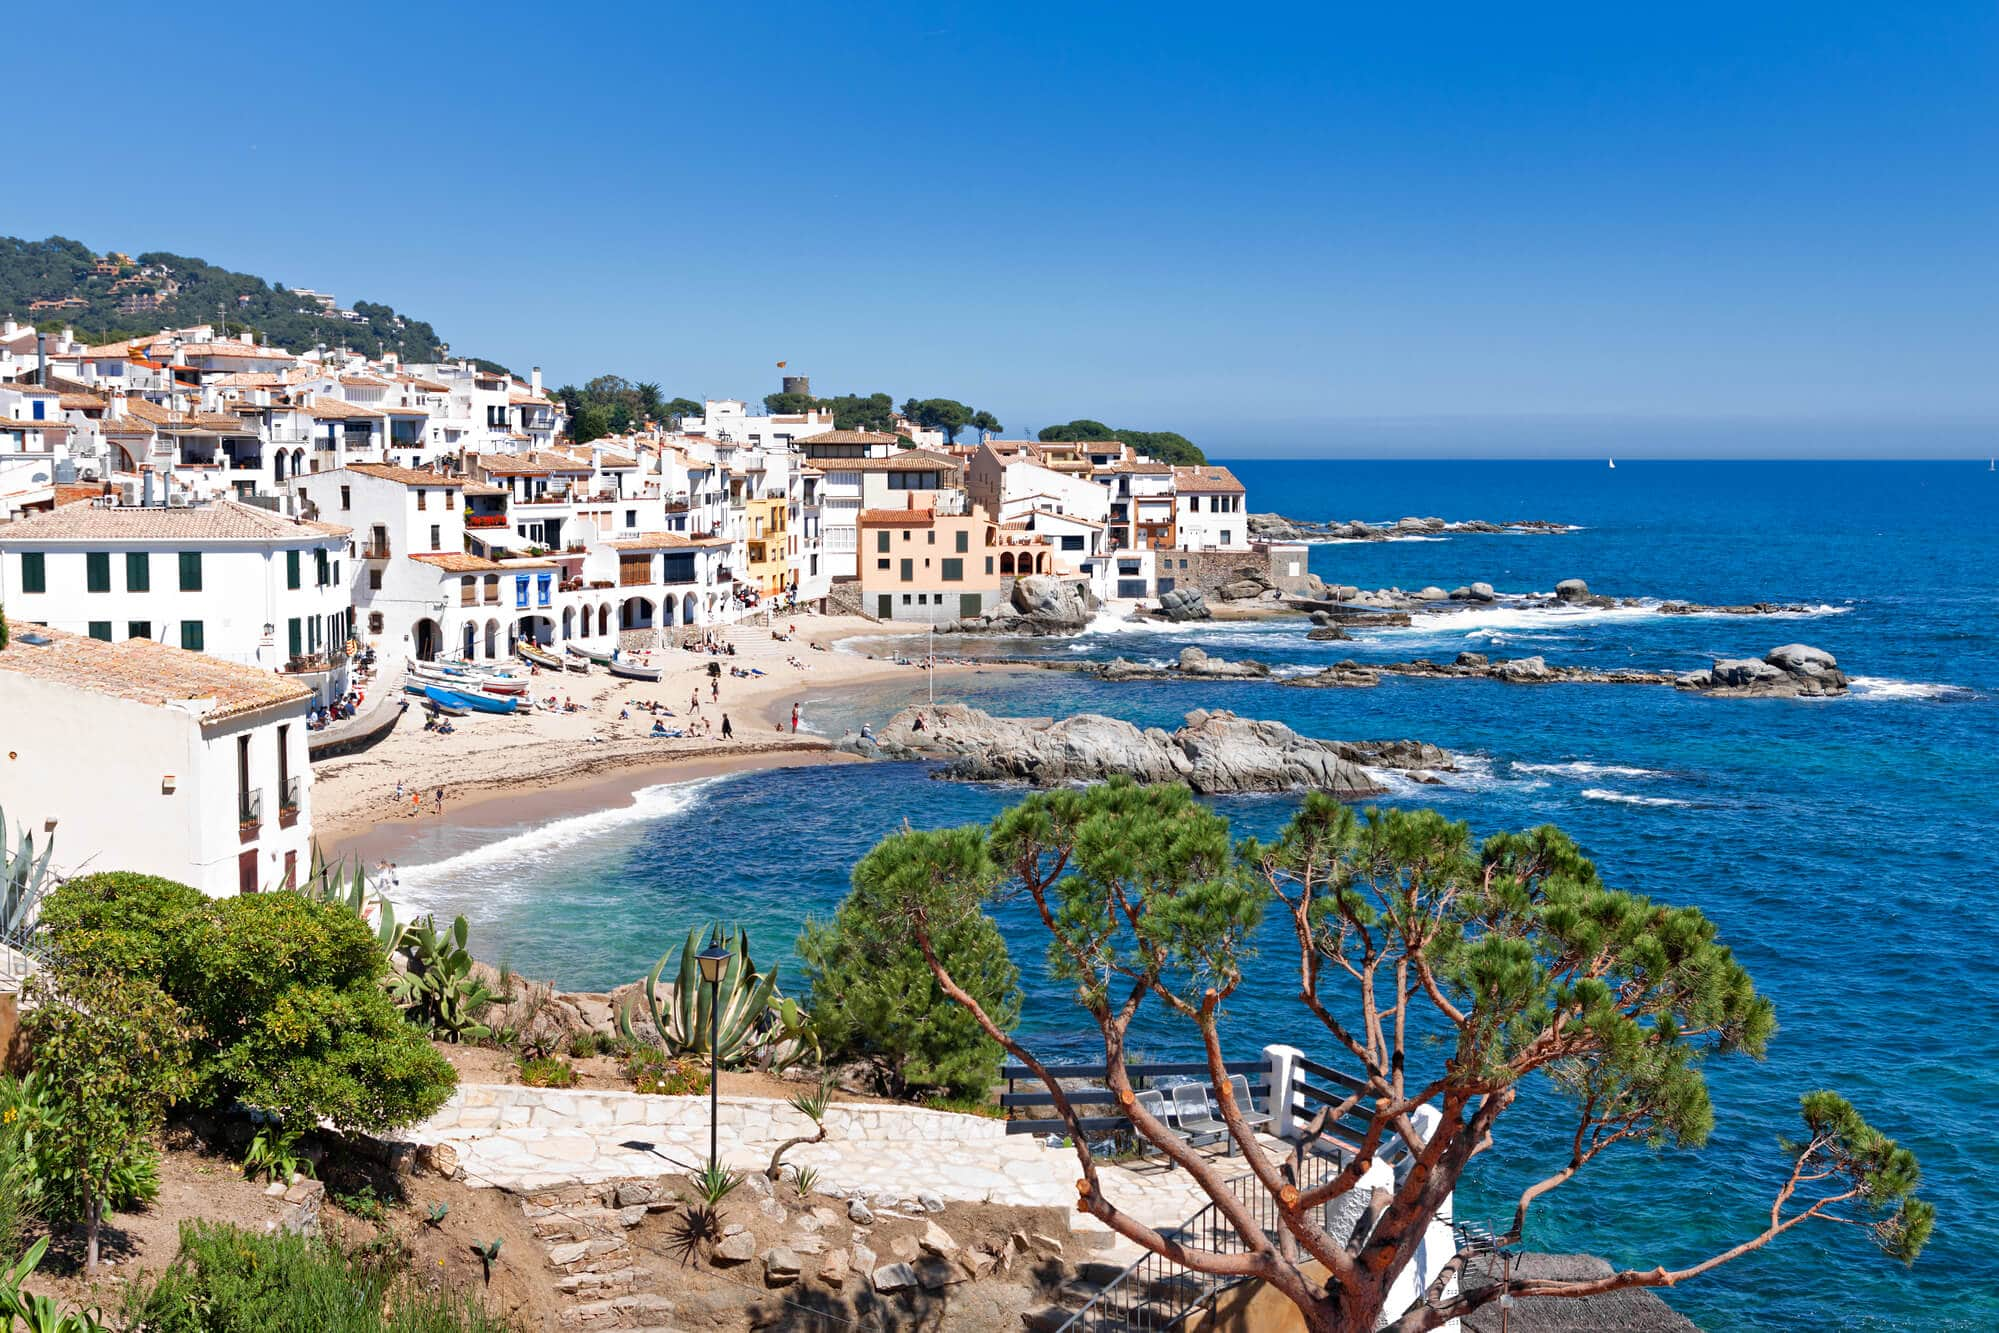 View of the beaches and white houses of Calella de Palafrugell on a sunny, clear day - One of the prettiest towns and hidden gem in Spain